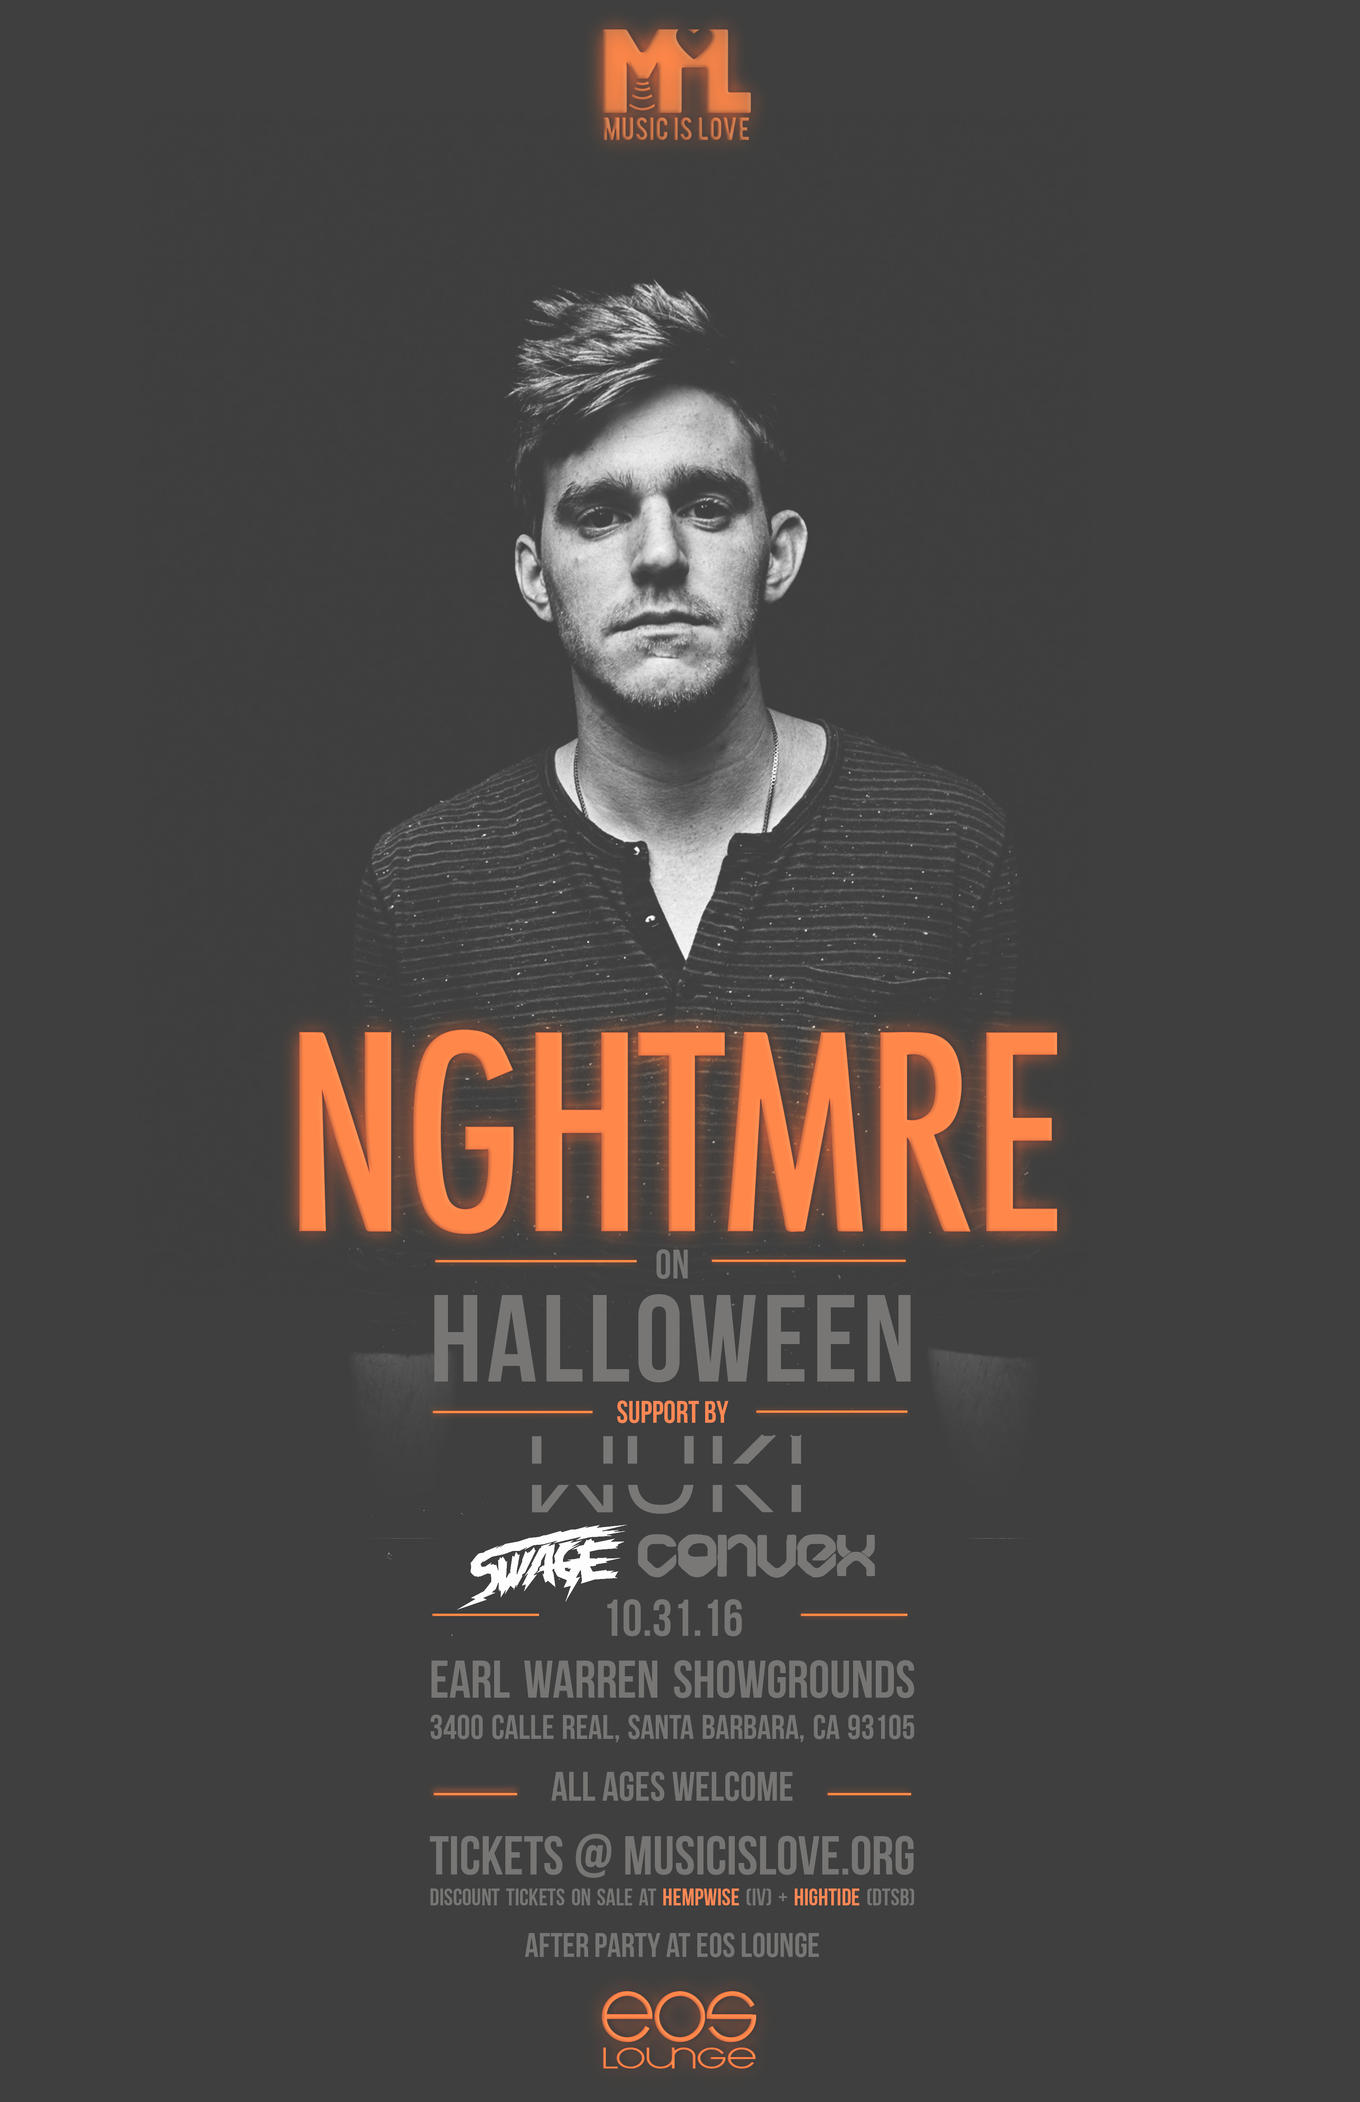 NGHTMRE on Halloween at Earl Warren Show Grounds 10.31.16 ...